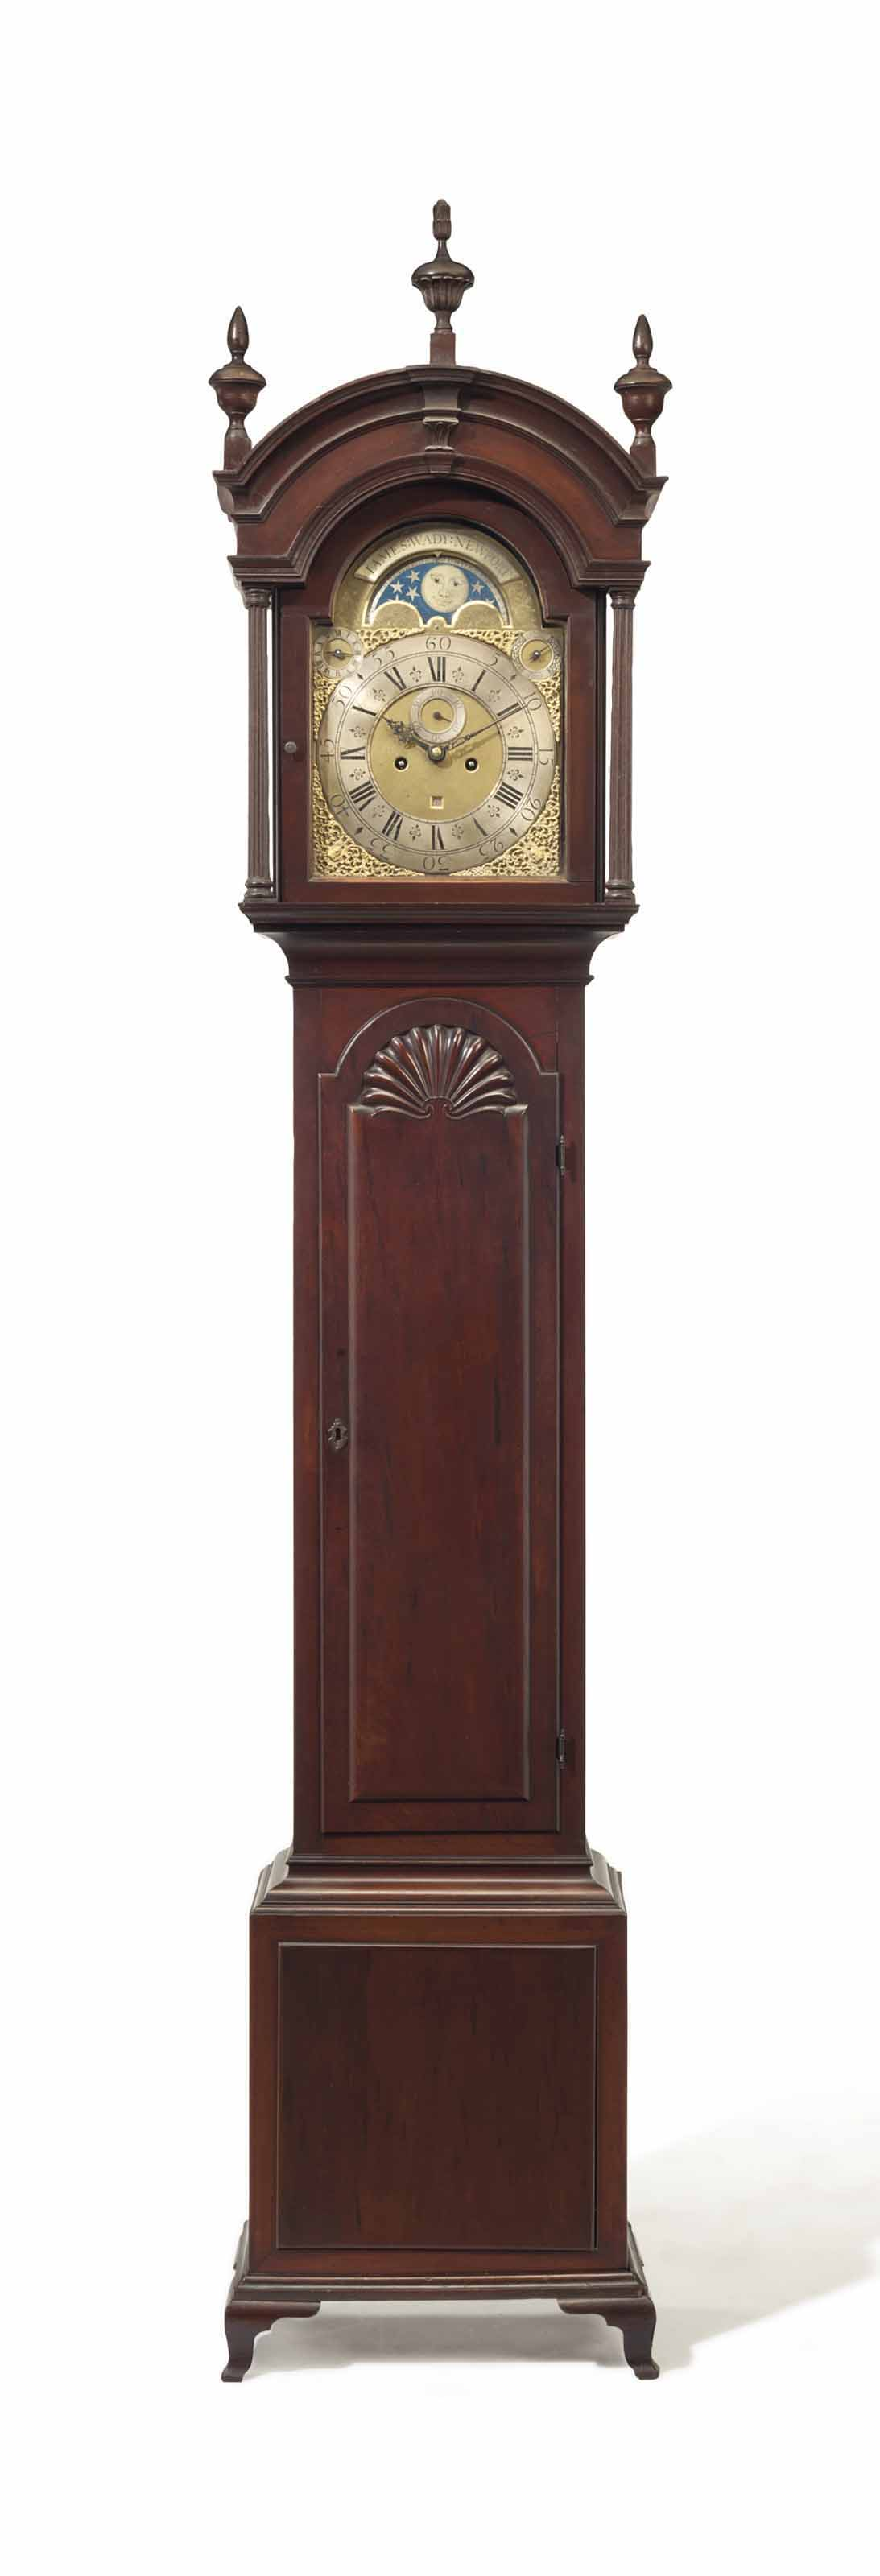 THE HUNTER-DUNN FAMILY CHIPPENDALE PLUM PUDDING MAHOGANY BLOCK-AND-SHELL TALL-CASE CLOCK